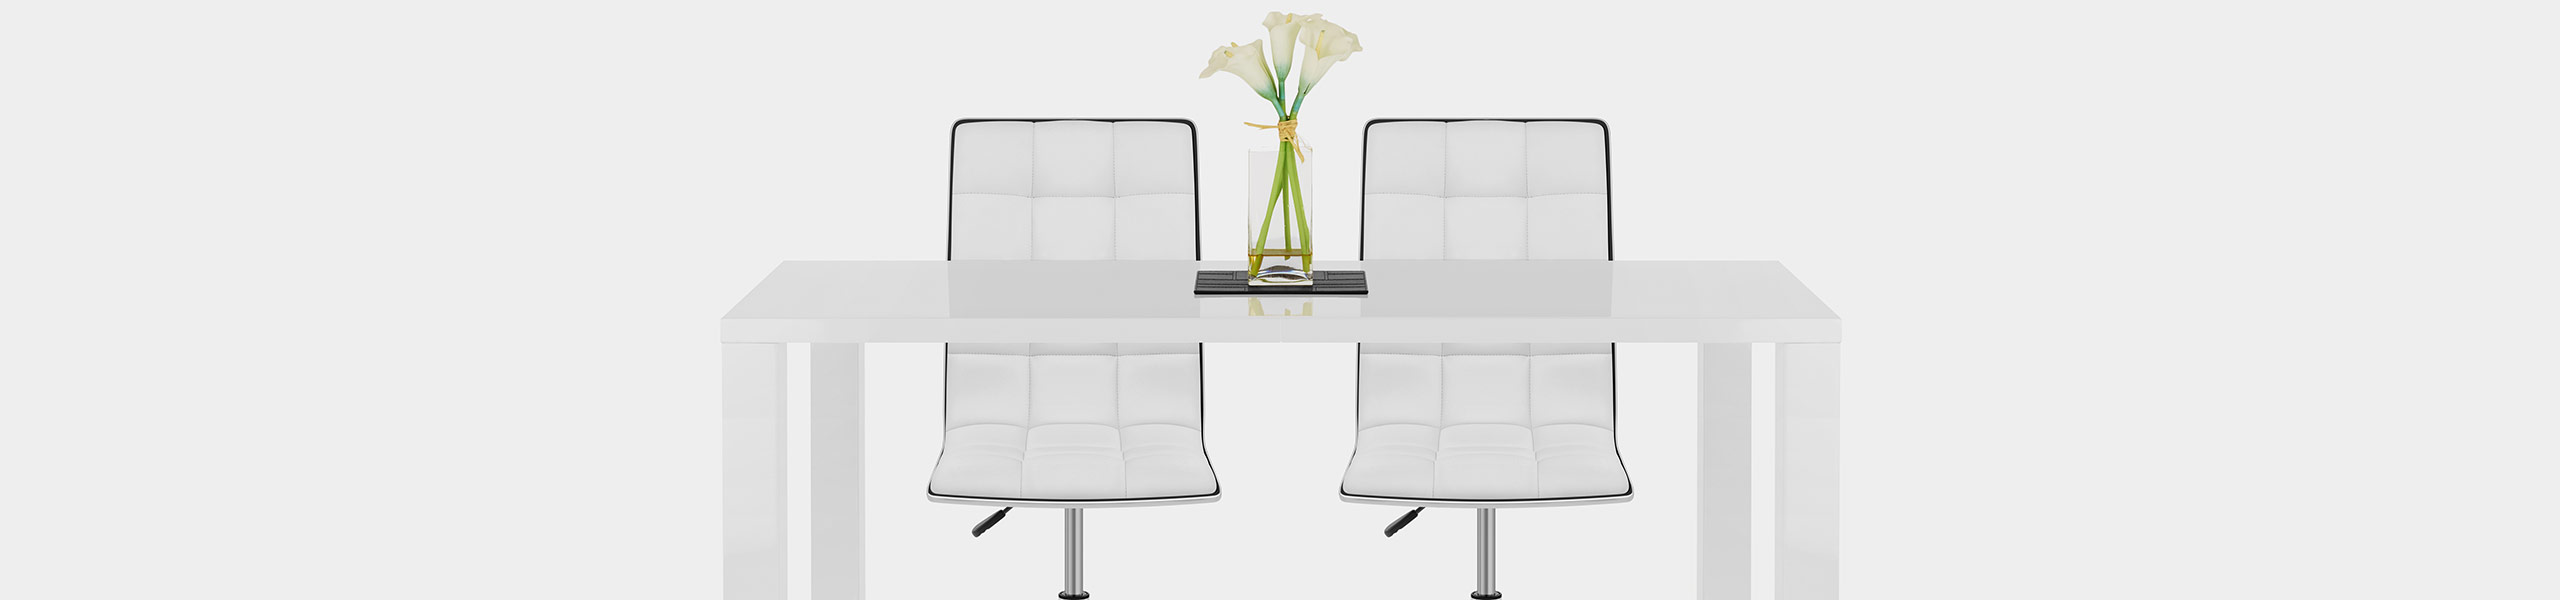 Macy Stool Chair White Video Banner